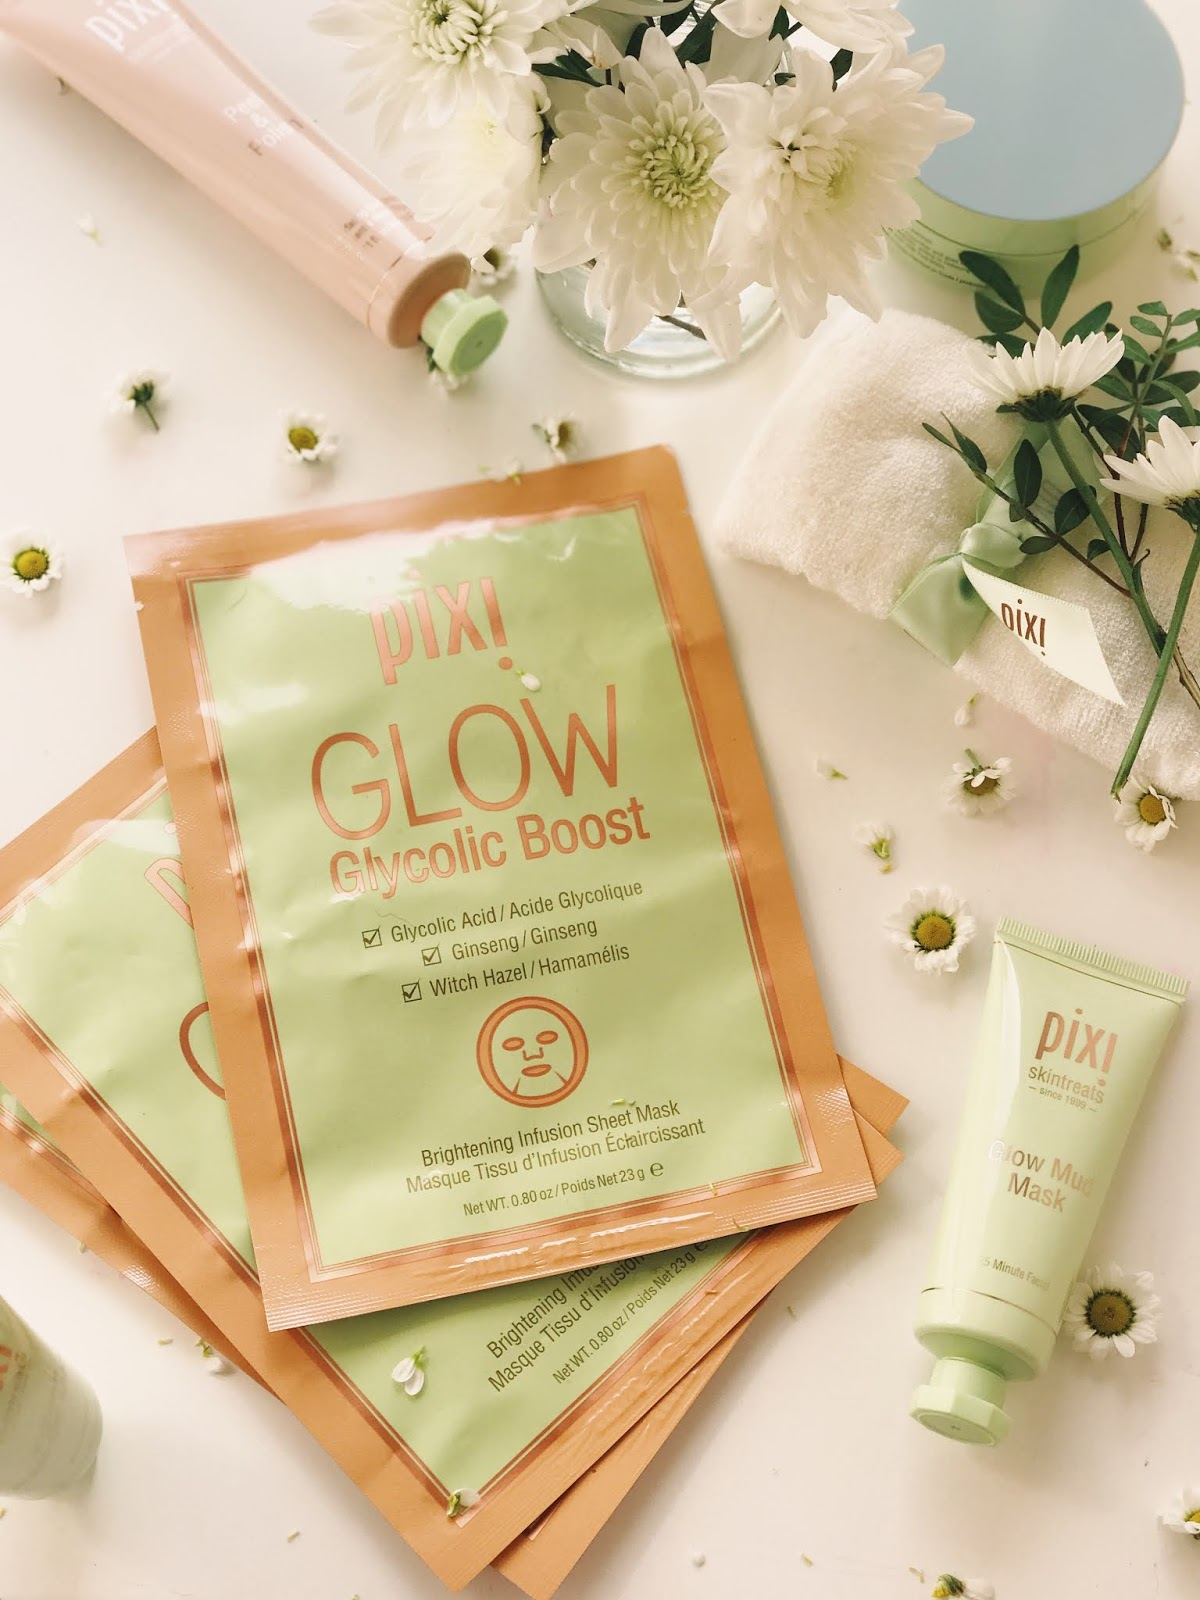 Pixi Glow Tonic Glycolic Boost Brightening Infusion Sheet Mask Review